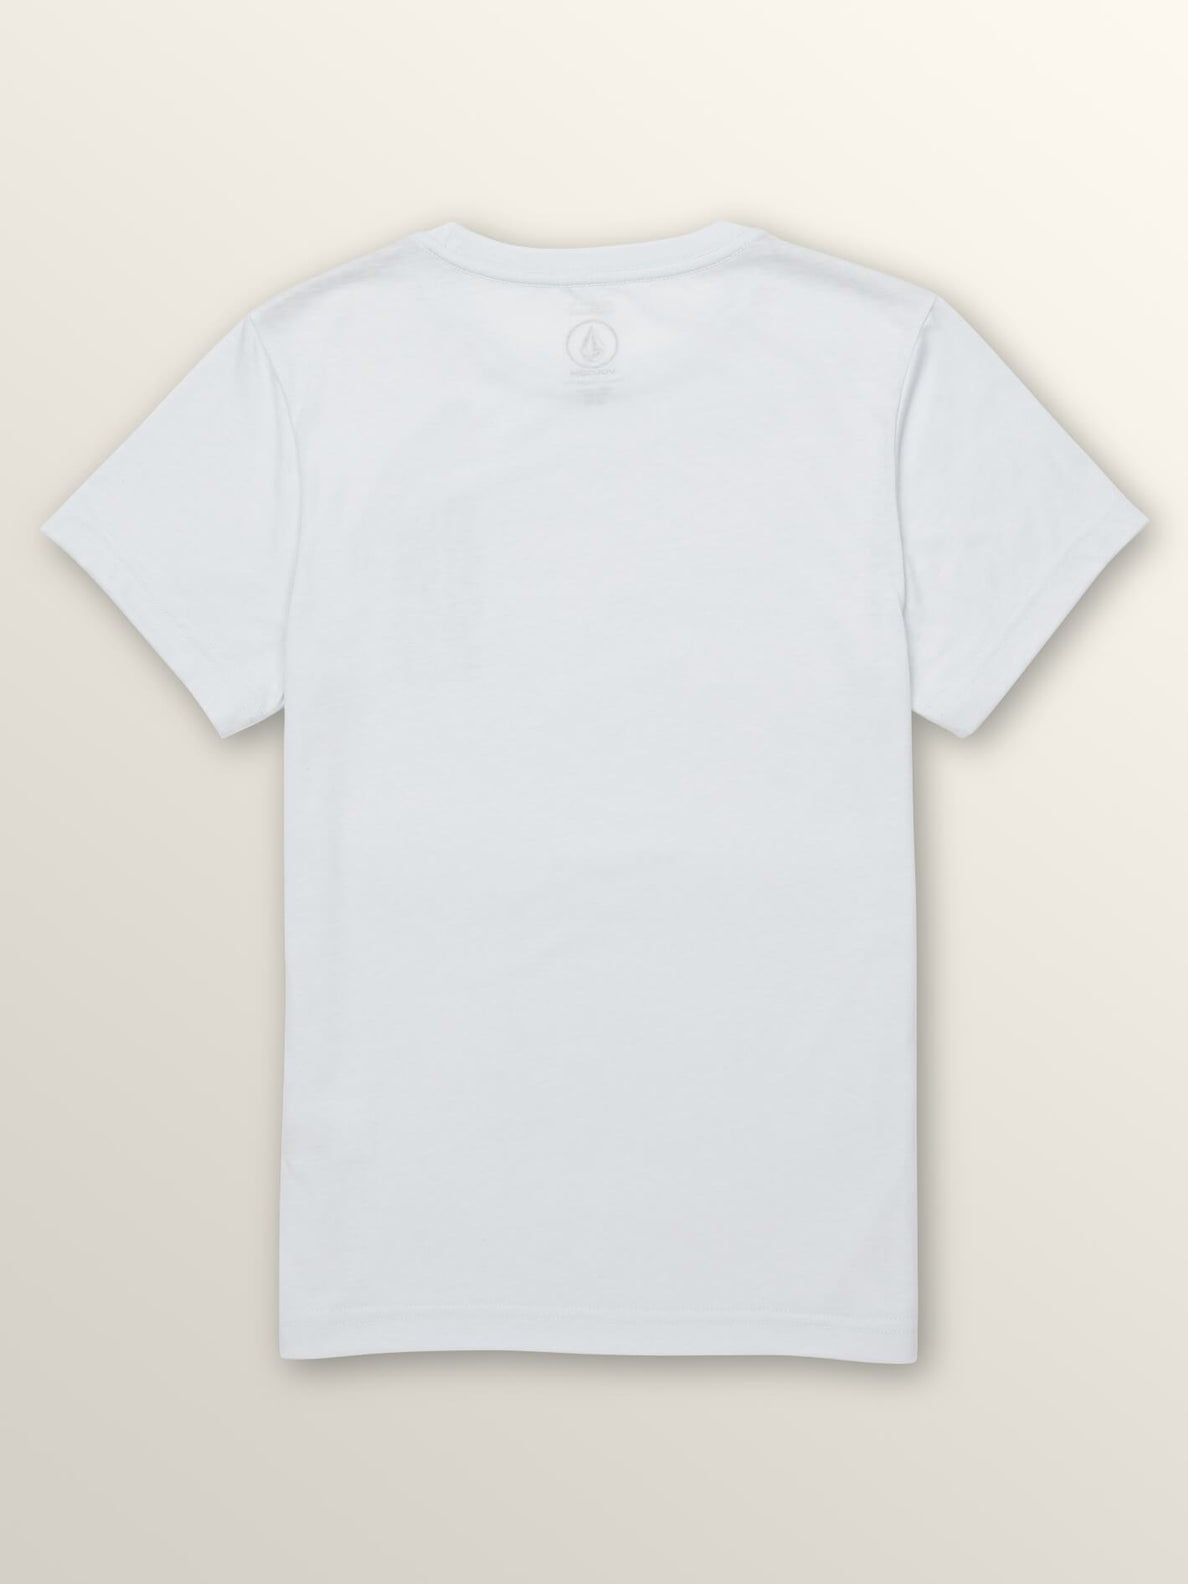 Big Boys Extend Short Sleeve Tee In White, Back View